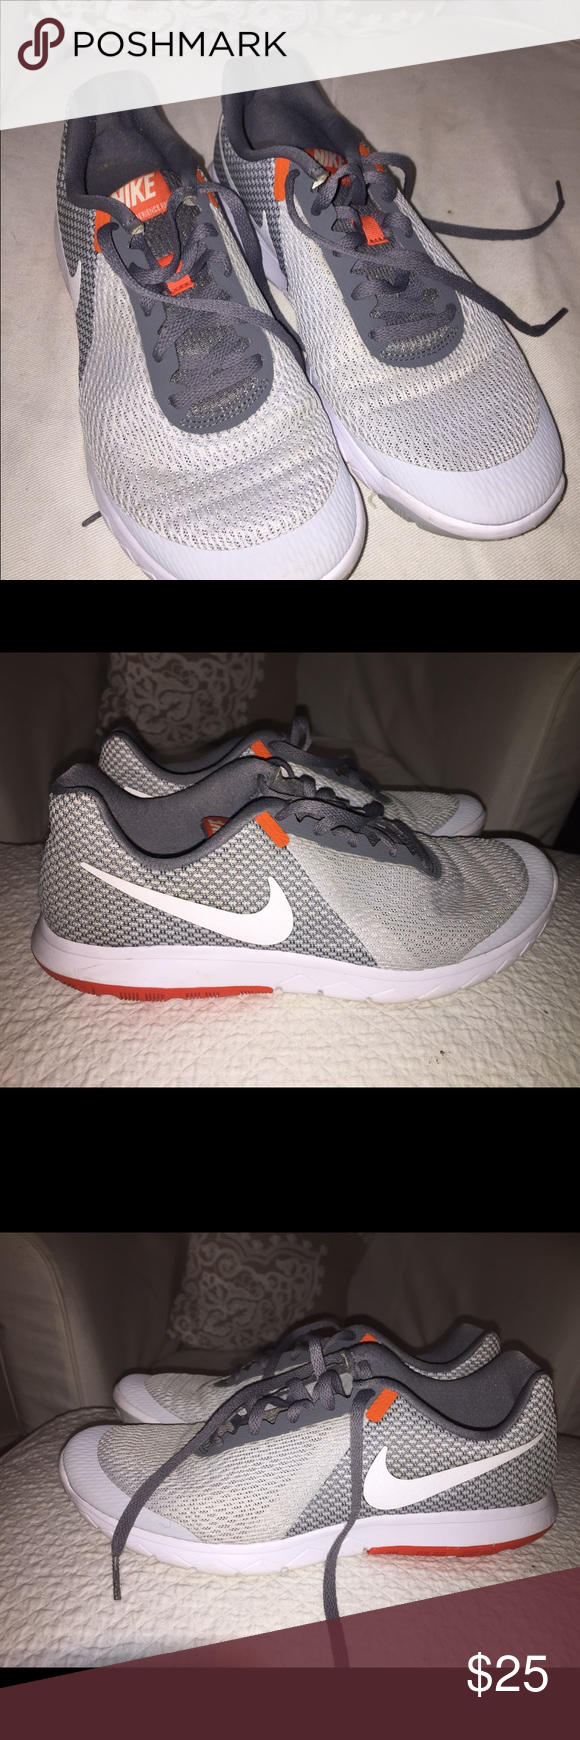 Nike size 8 ladies shoes Great used condition Nike Shoes Athletic Shoes